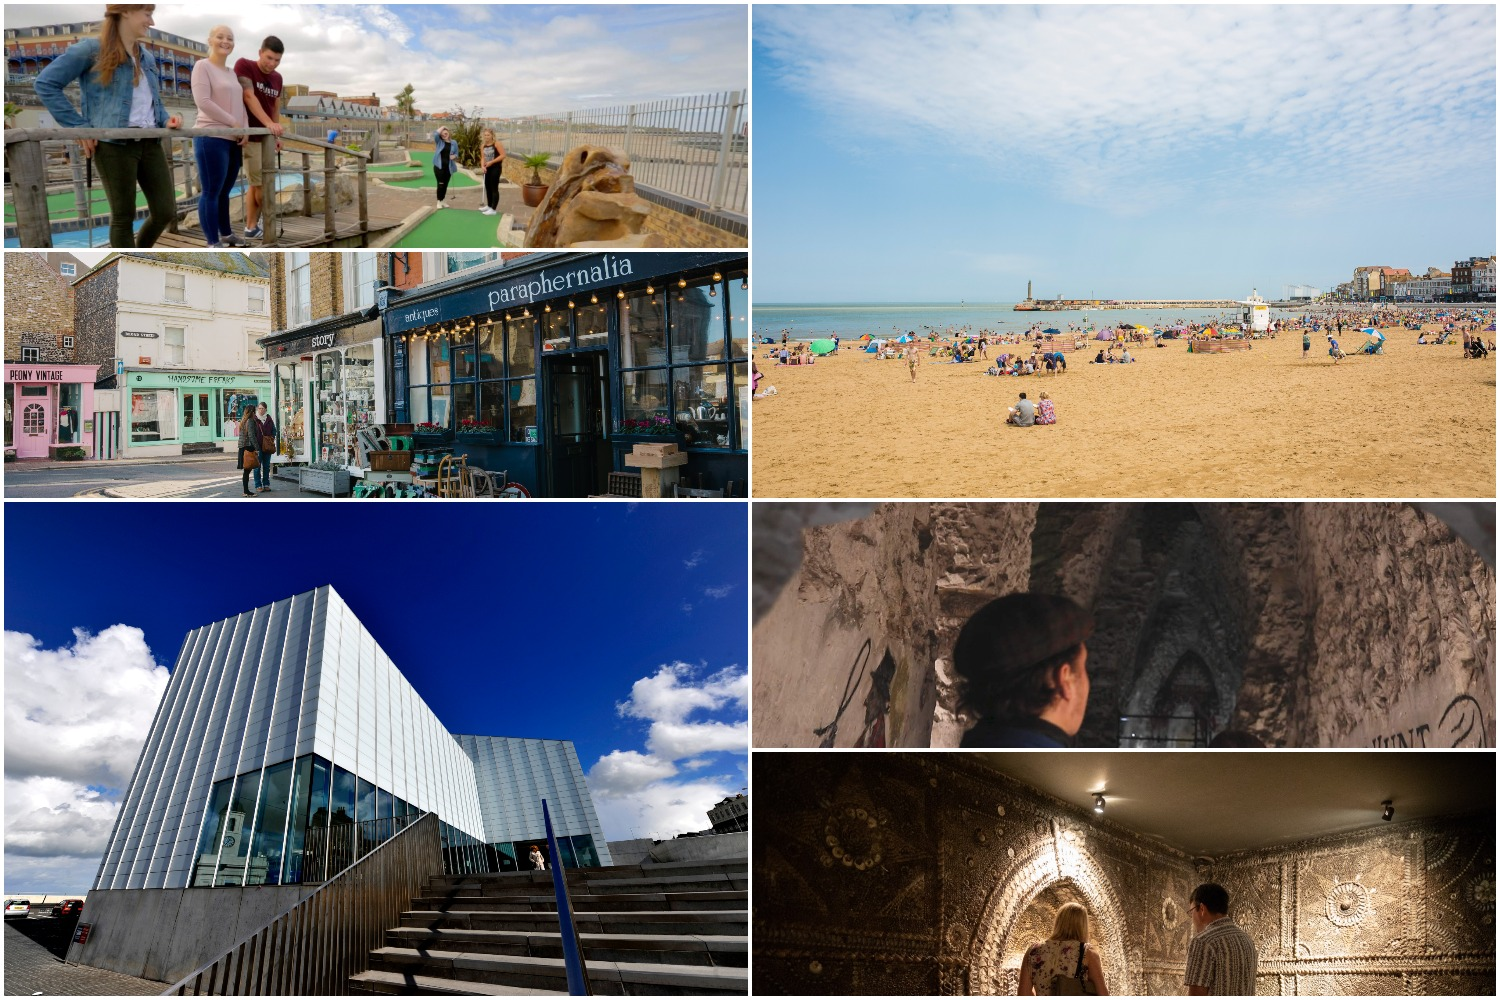 Attractions at Margate images courtesy of Thanet District Council